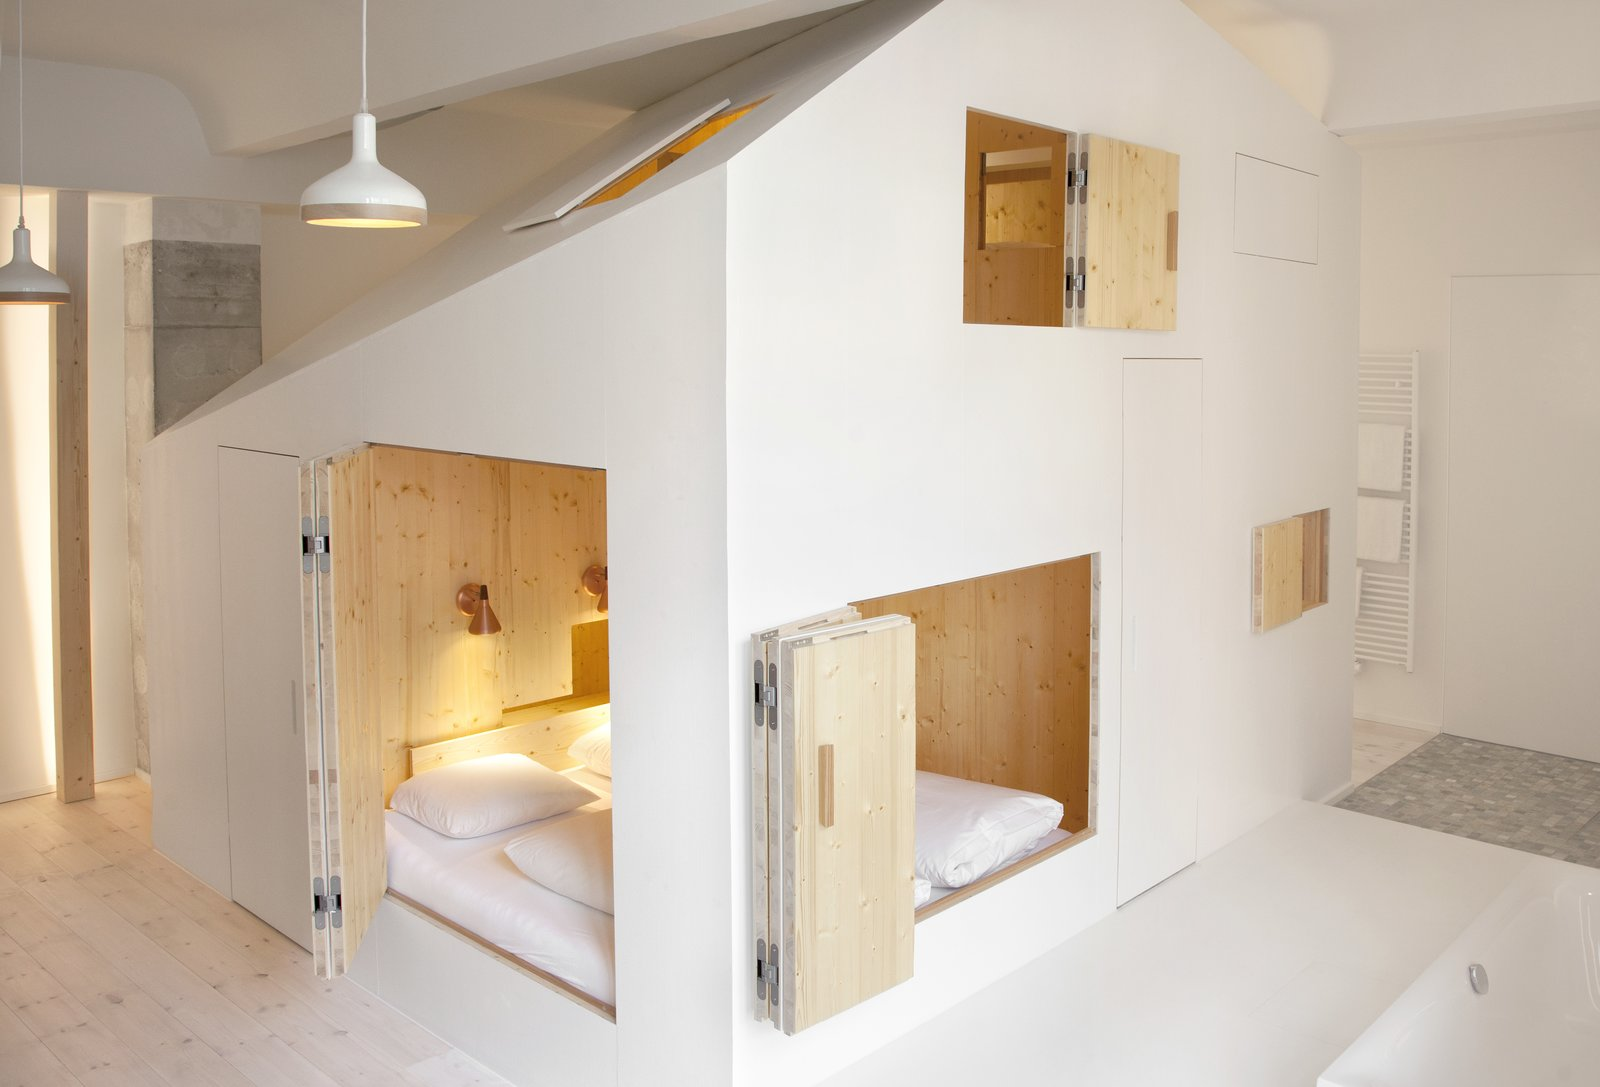 Room 304-the House of Doors Michelberger Hotel, Berlin. By Sigurd Larsen pp 104-105  Photo 2 of 15 in Gestalten's New Book Shows How to Transform Small Spaces Into Design Marvels